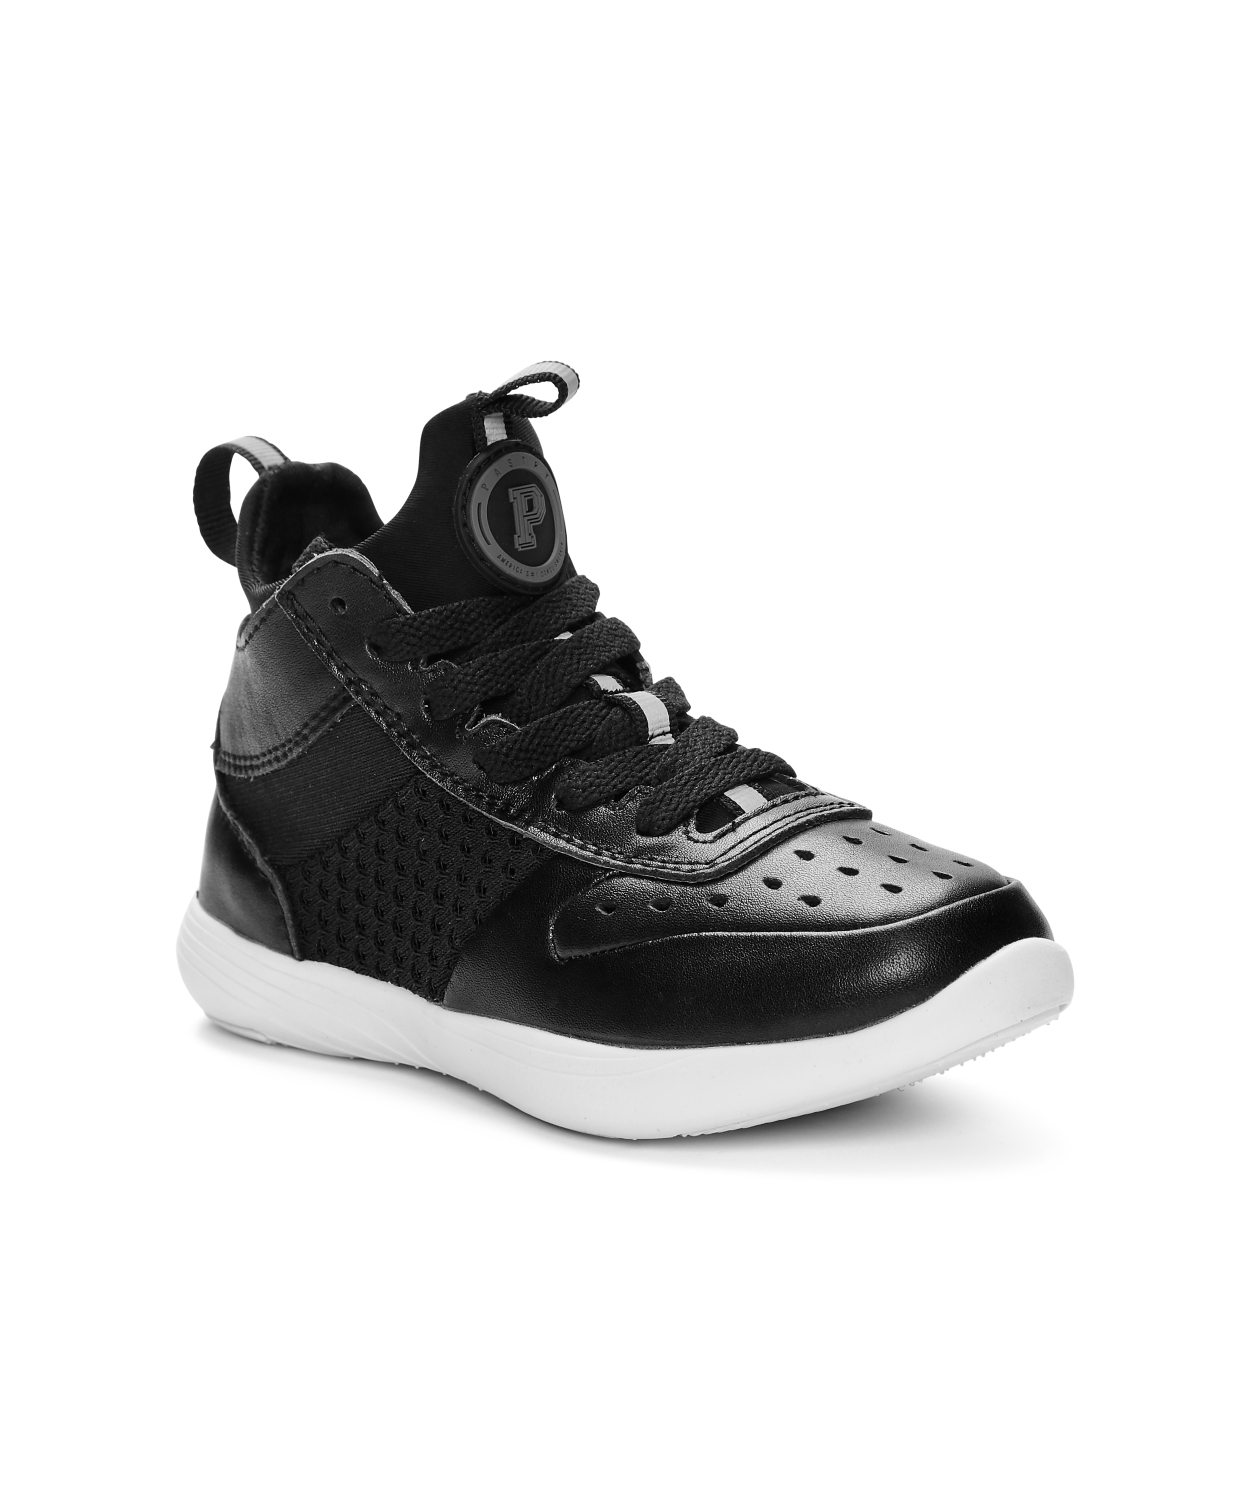 Pastry Ultimate Hip Hop Youth Sneaker In Black